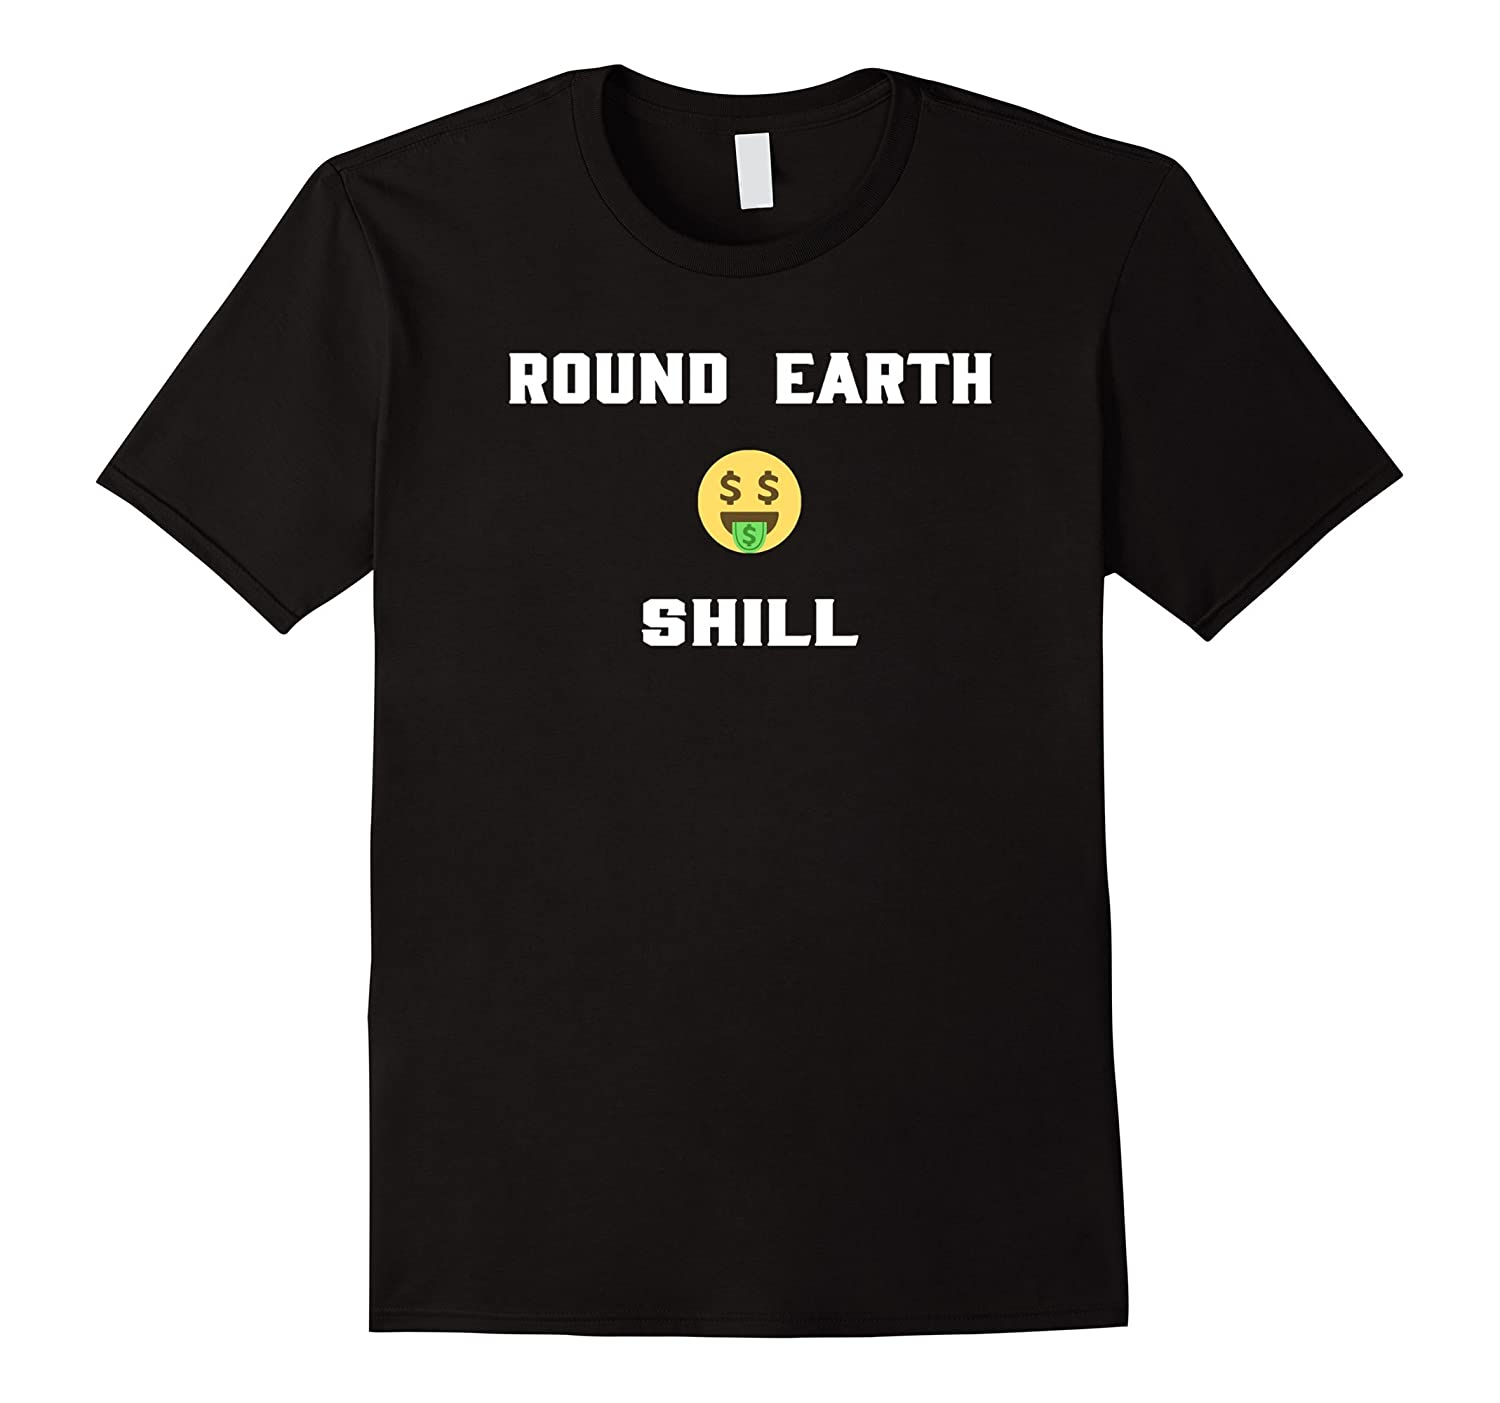 Round Earth Shill T-Shirt Funny Anti Flat Earth Shirt-Vaci